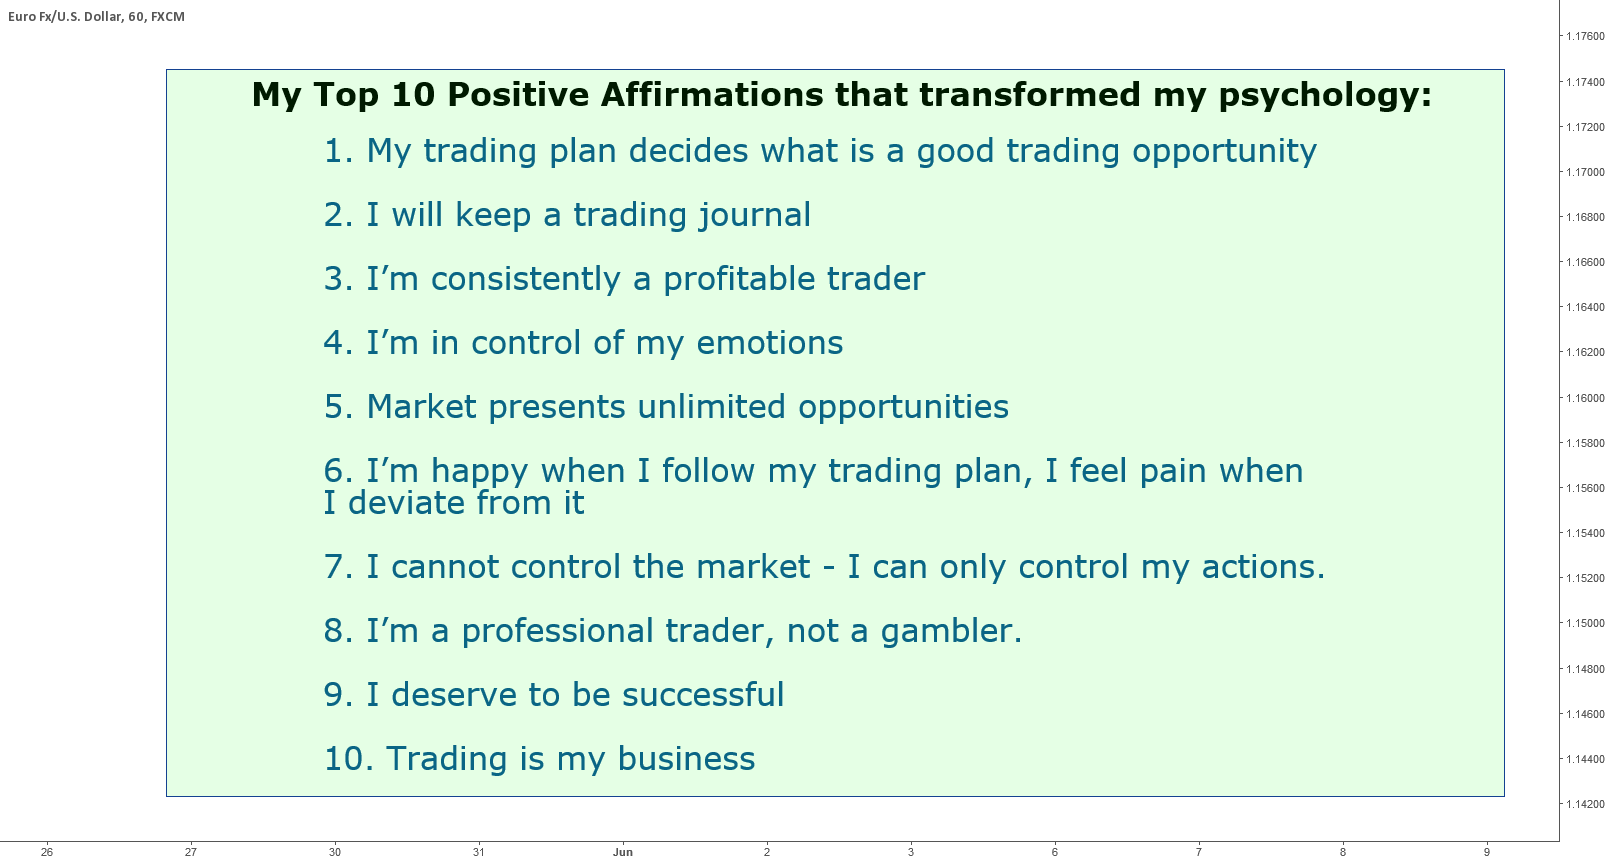 My Top 10 Positive Affirmations that transformed my trading